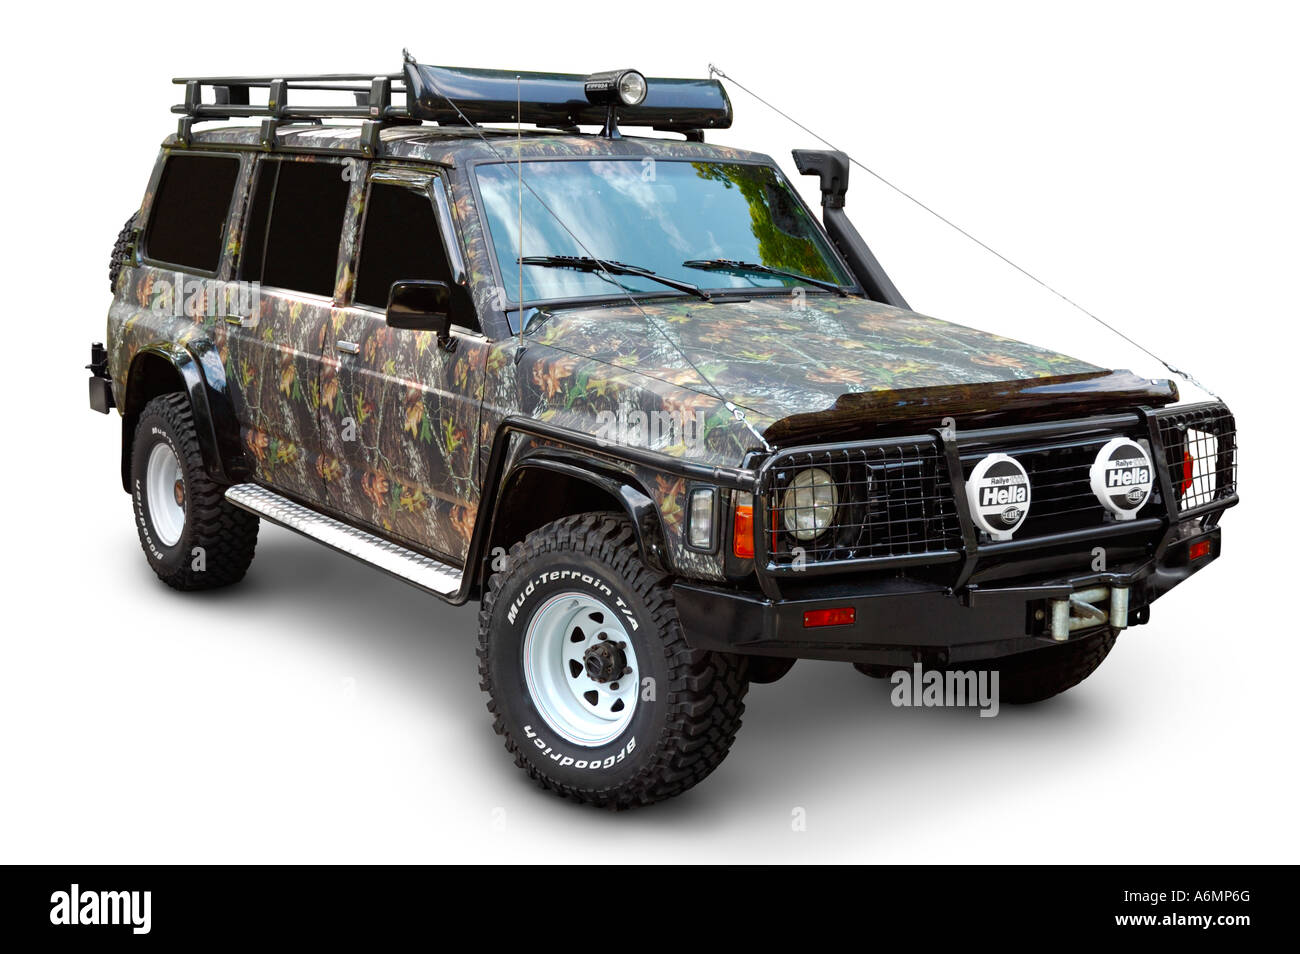 camouflaged and tuned nissan patrol 1997 4x4 stock photo royalty free image 11610663 alamy. Black Bedroom Furniture Sets. Home Design Ideas